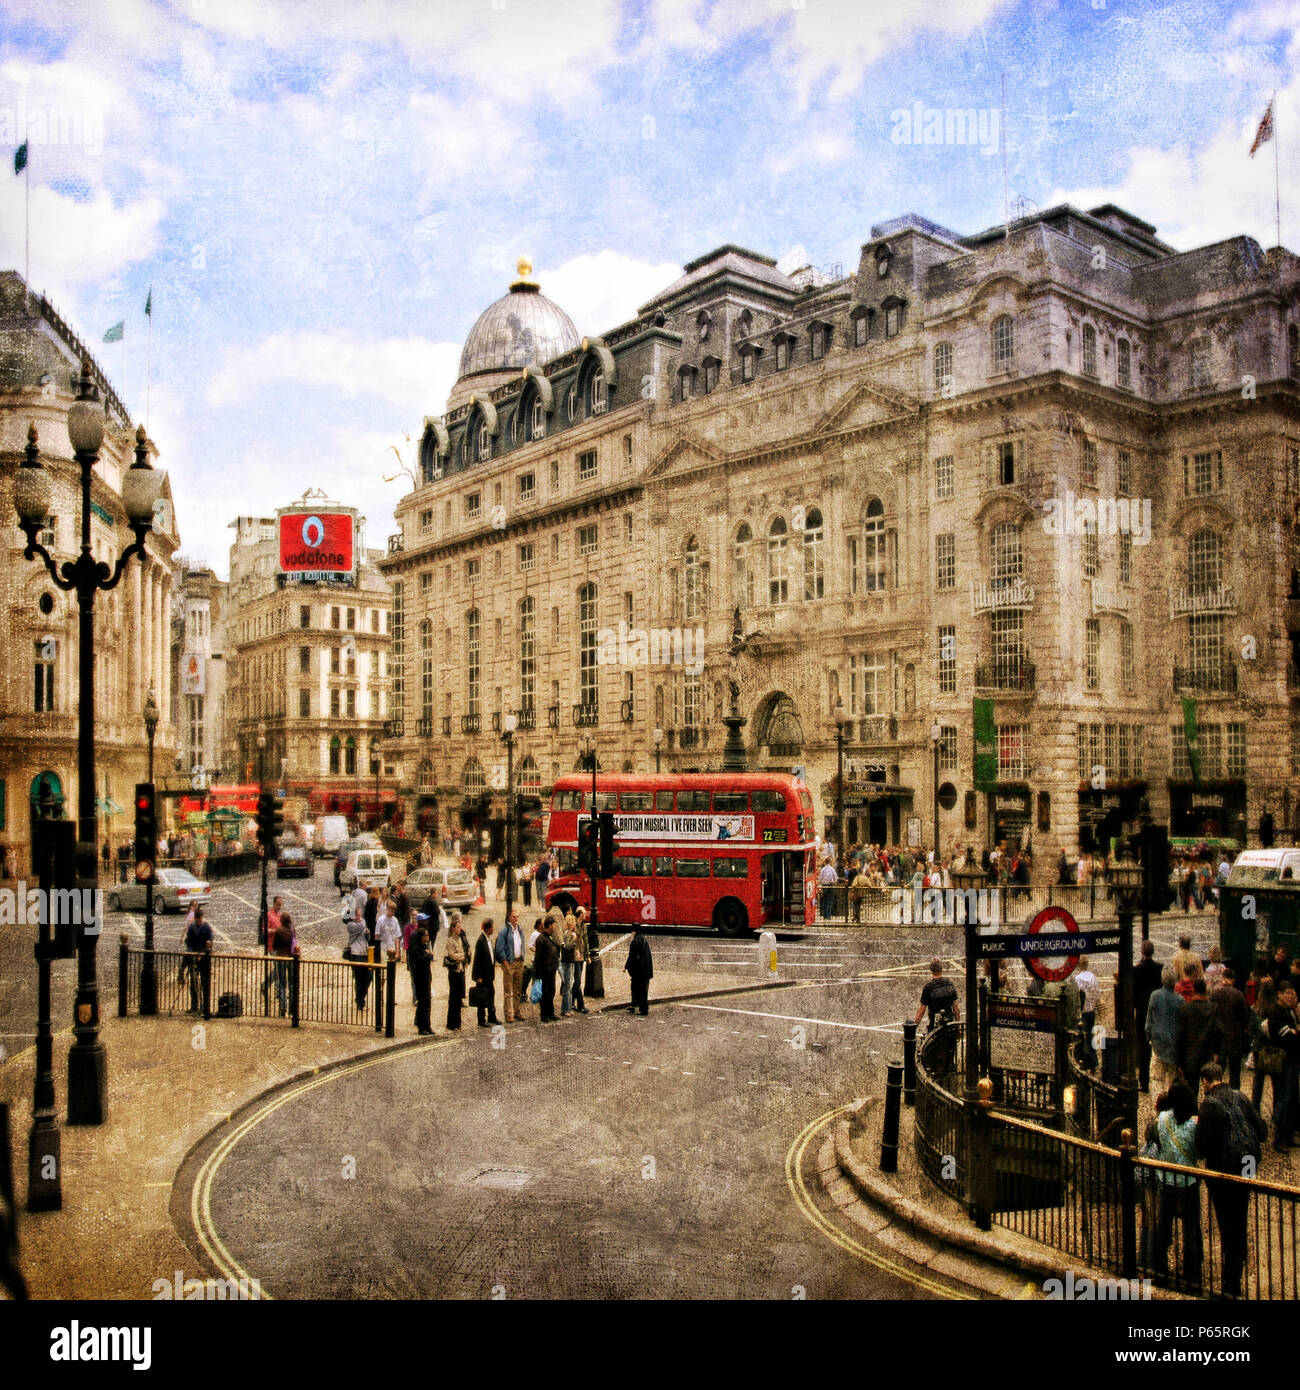 Piccadilly Circus, London, UK - Stock Image